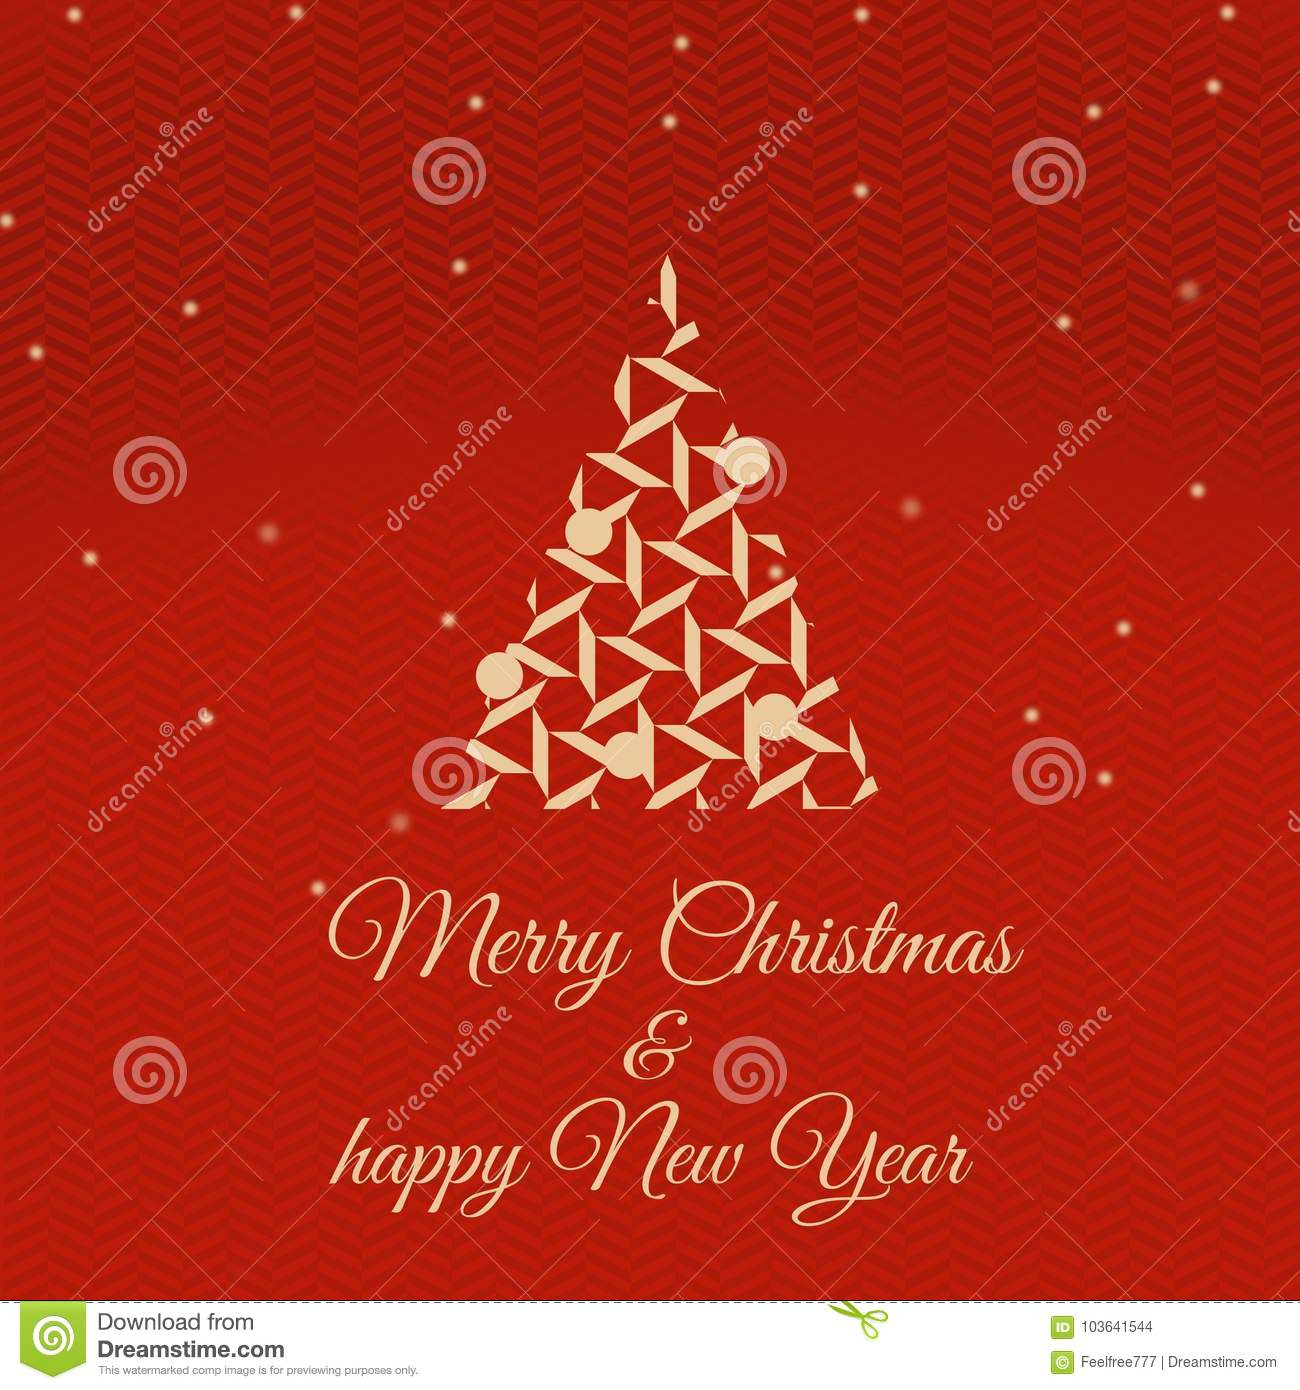 christmas wishes for everyone